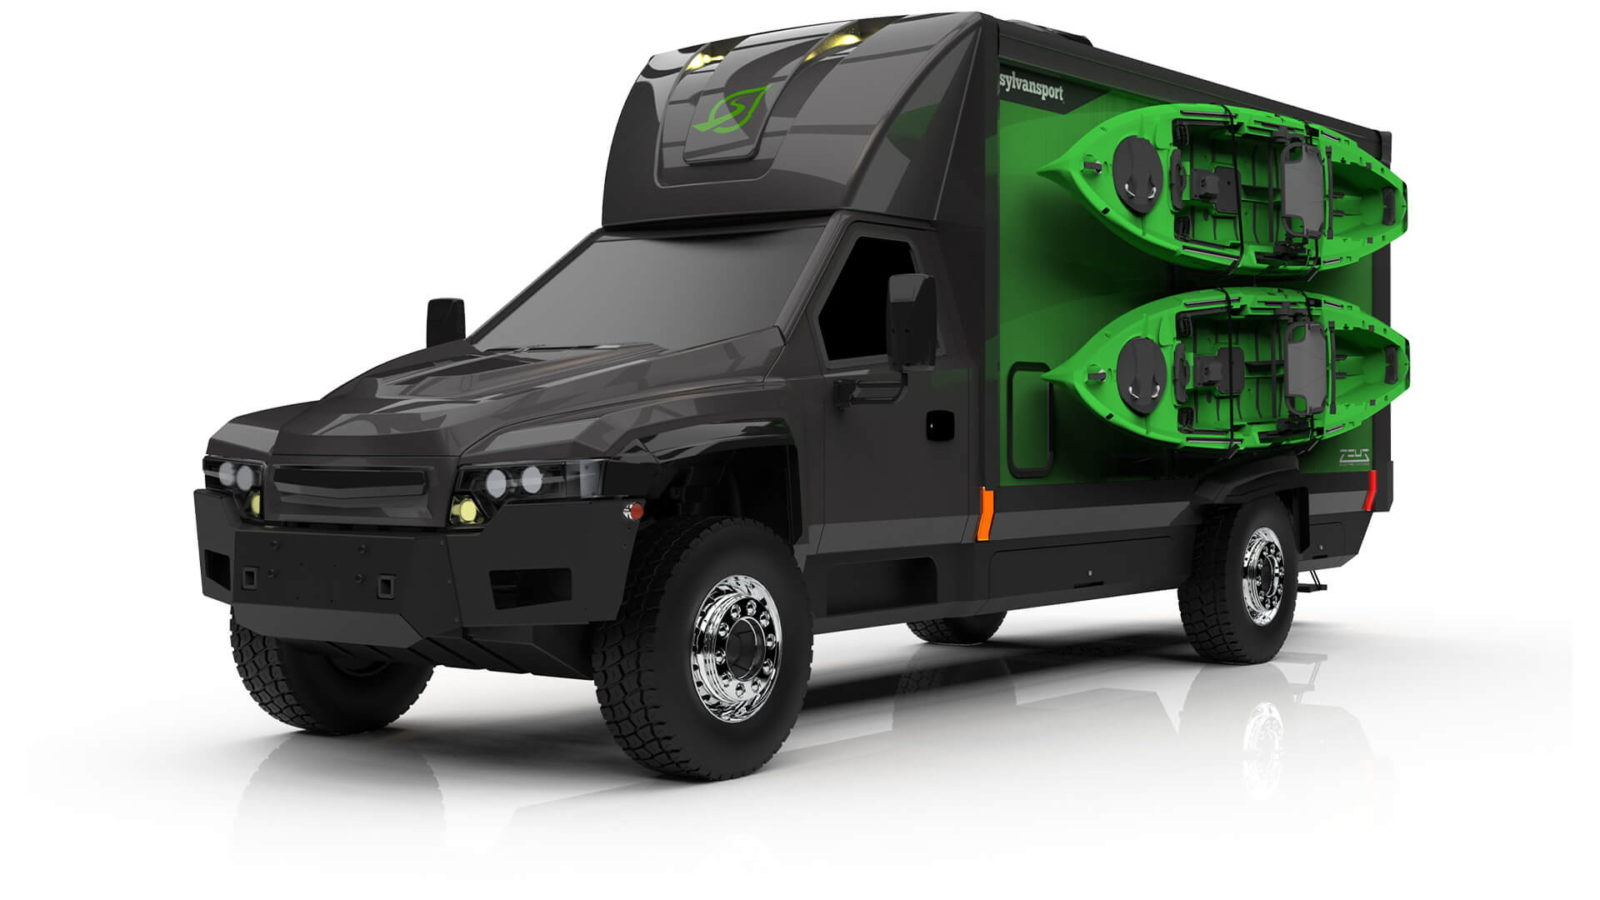 innovative-electric-rv-set-to-conquer-the-roads-with-290-hp-and-400-mile-range